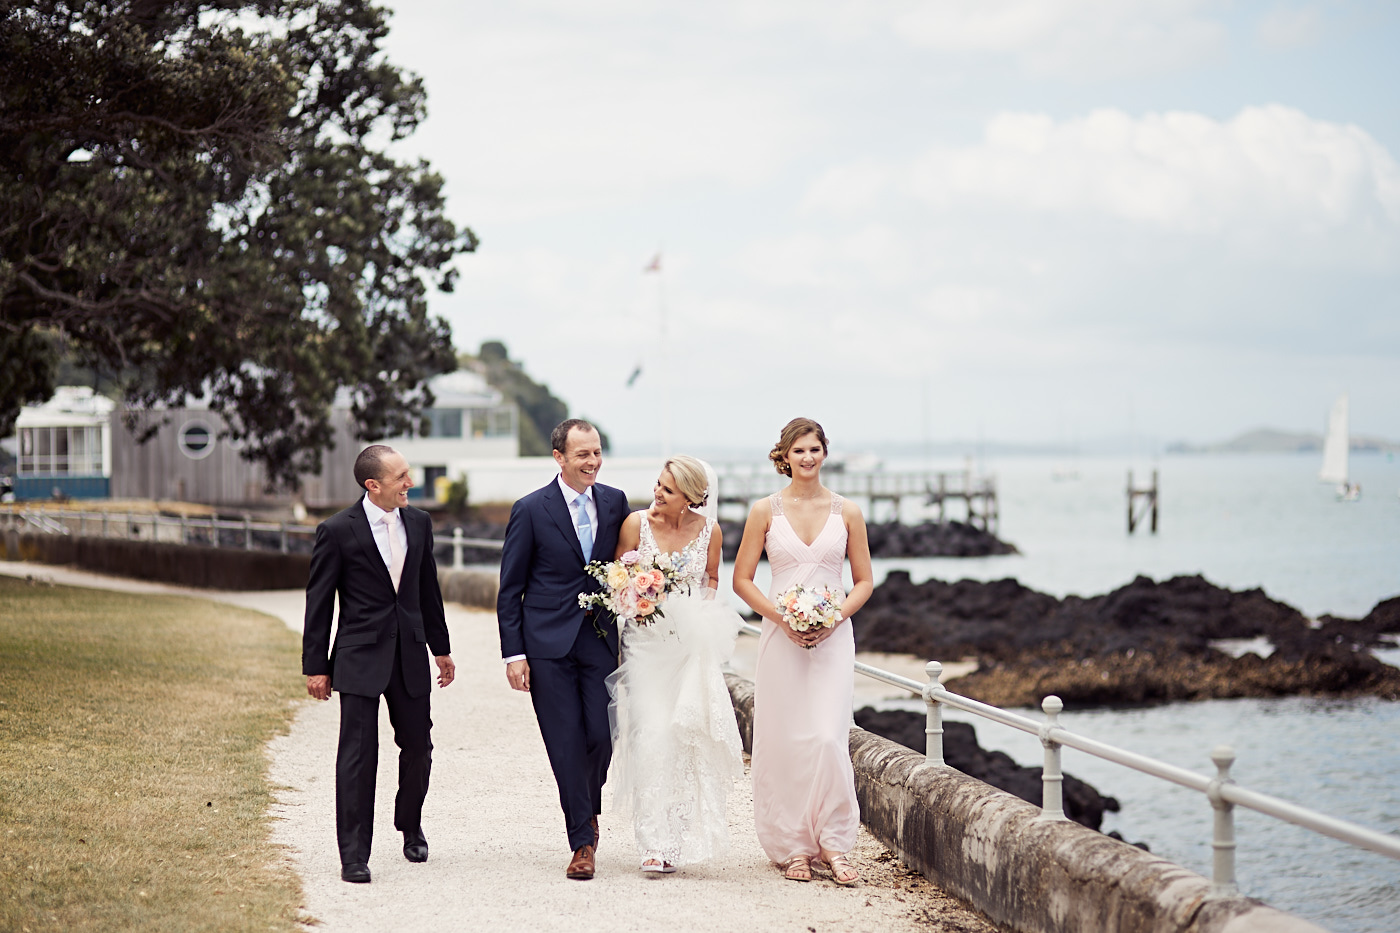 Adam Popovic wedding photo